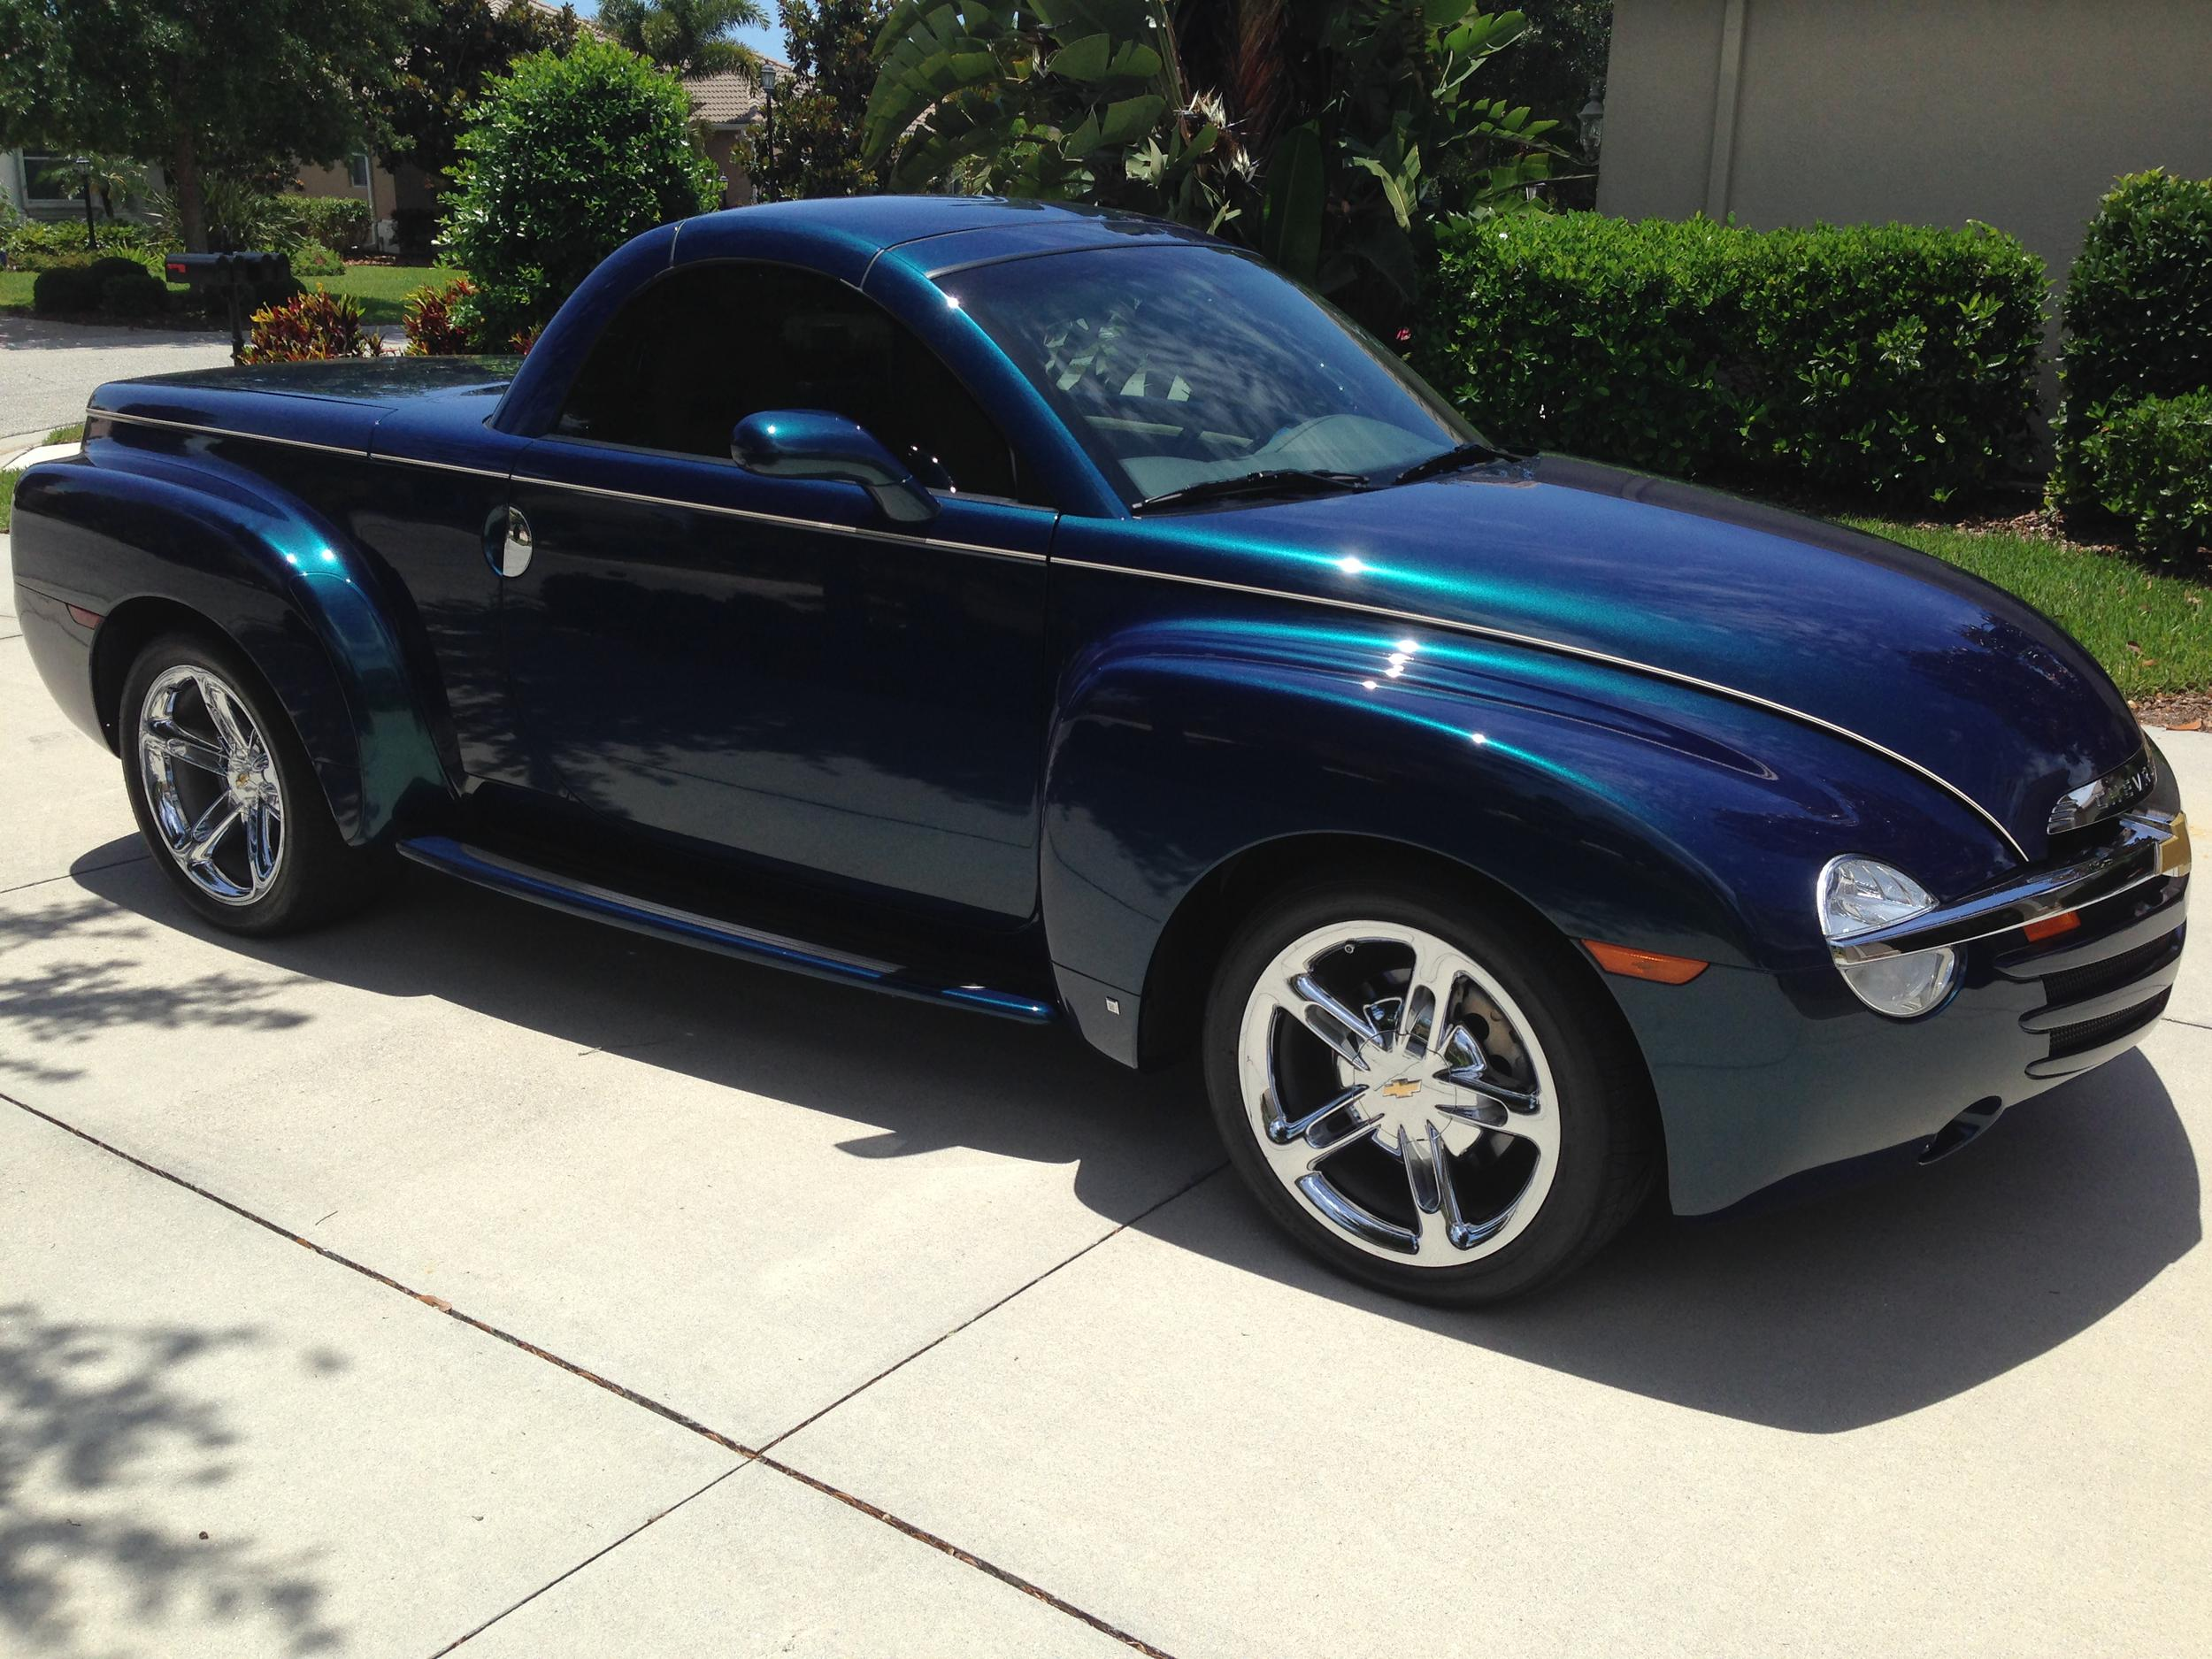 2006 Ssr No Longer For Sale Chevy Ssr Forum